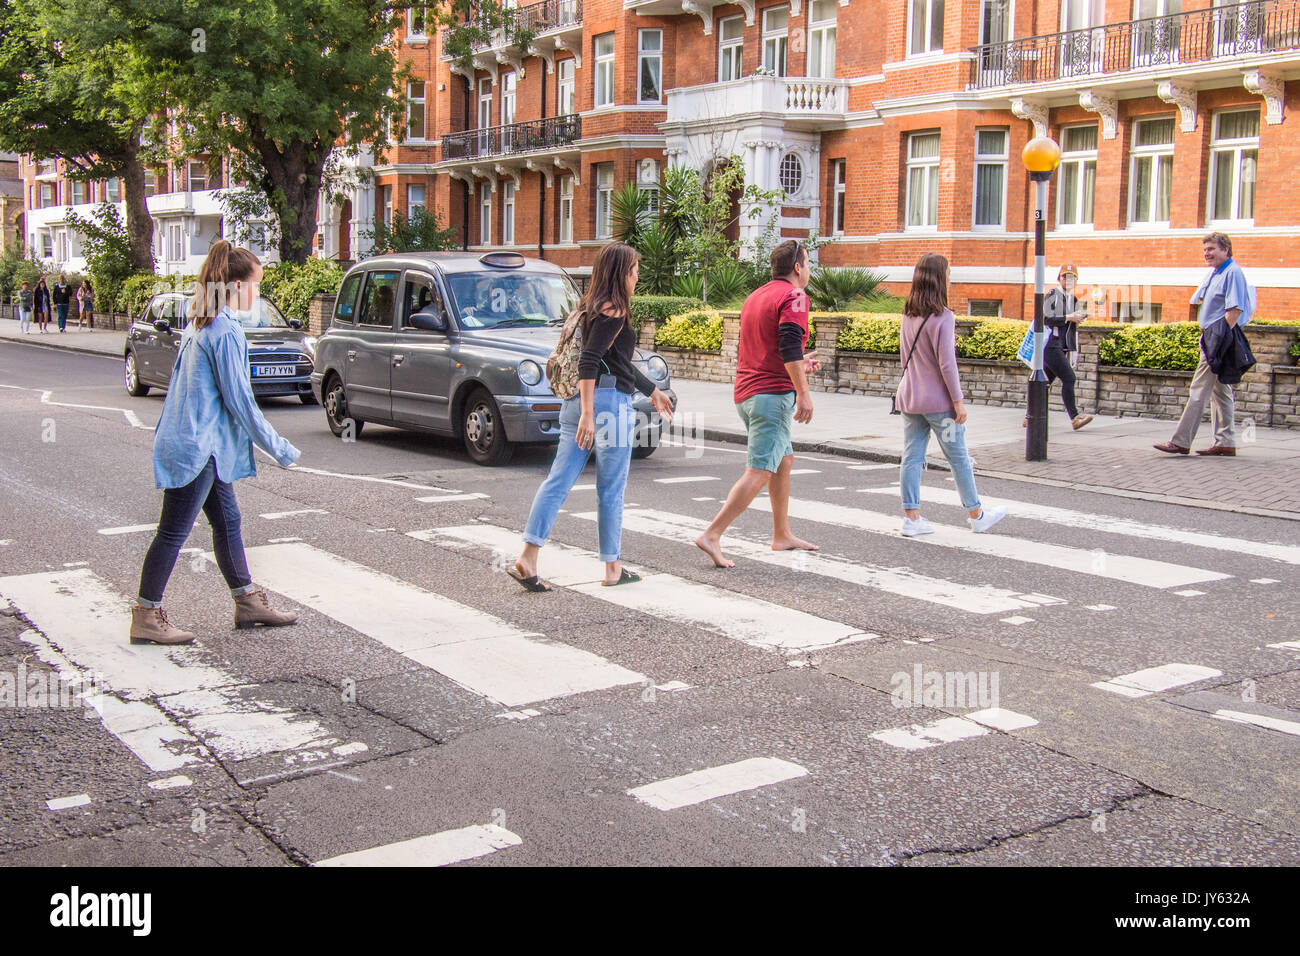 People recreating the famous Abbey Road Beatles Cover - Stock Image